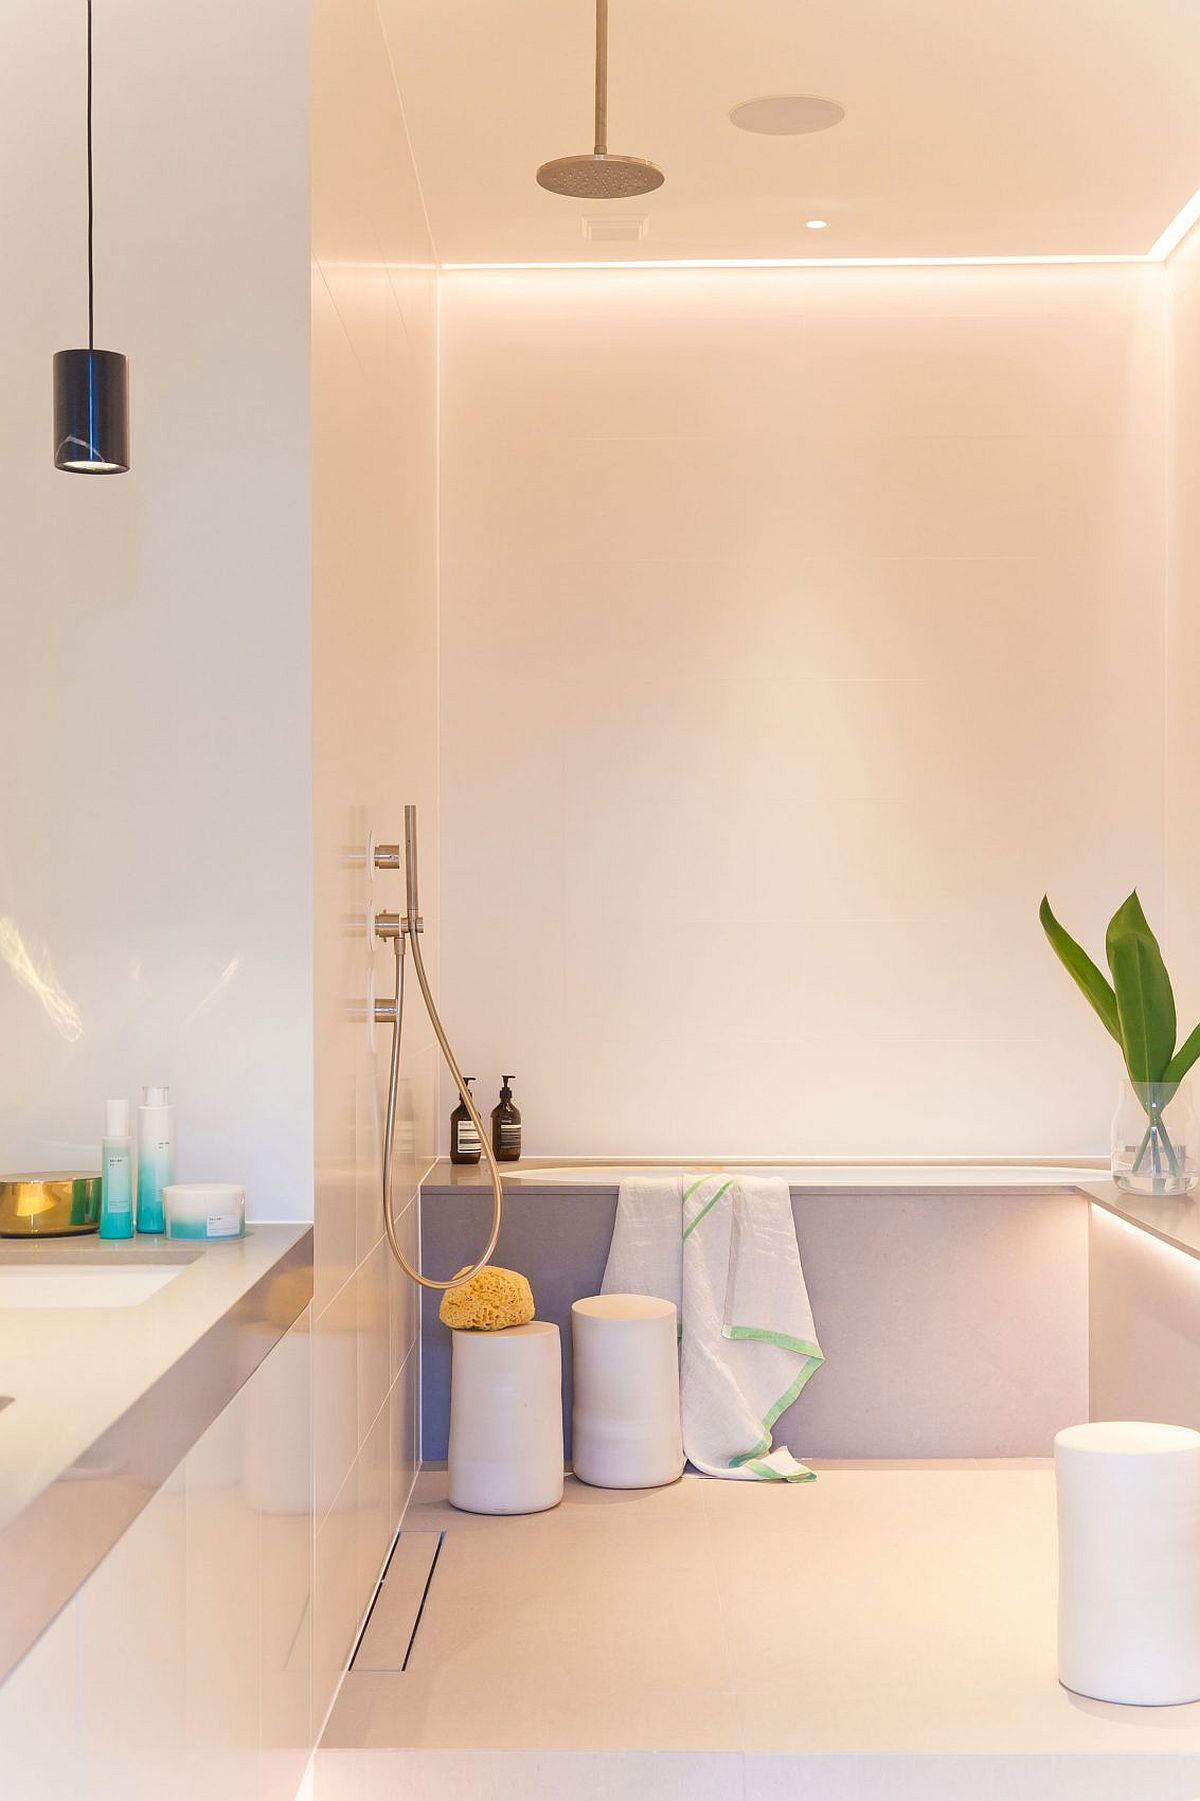 Bathtub in the corner is a smart space saver in the modern bathroom